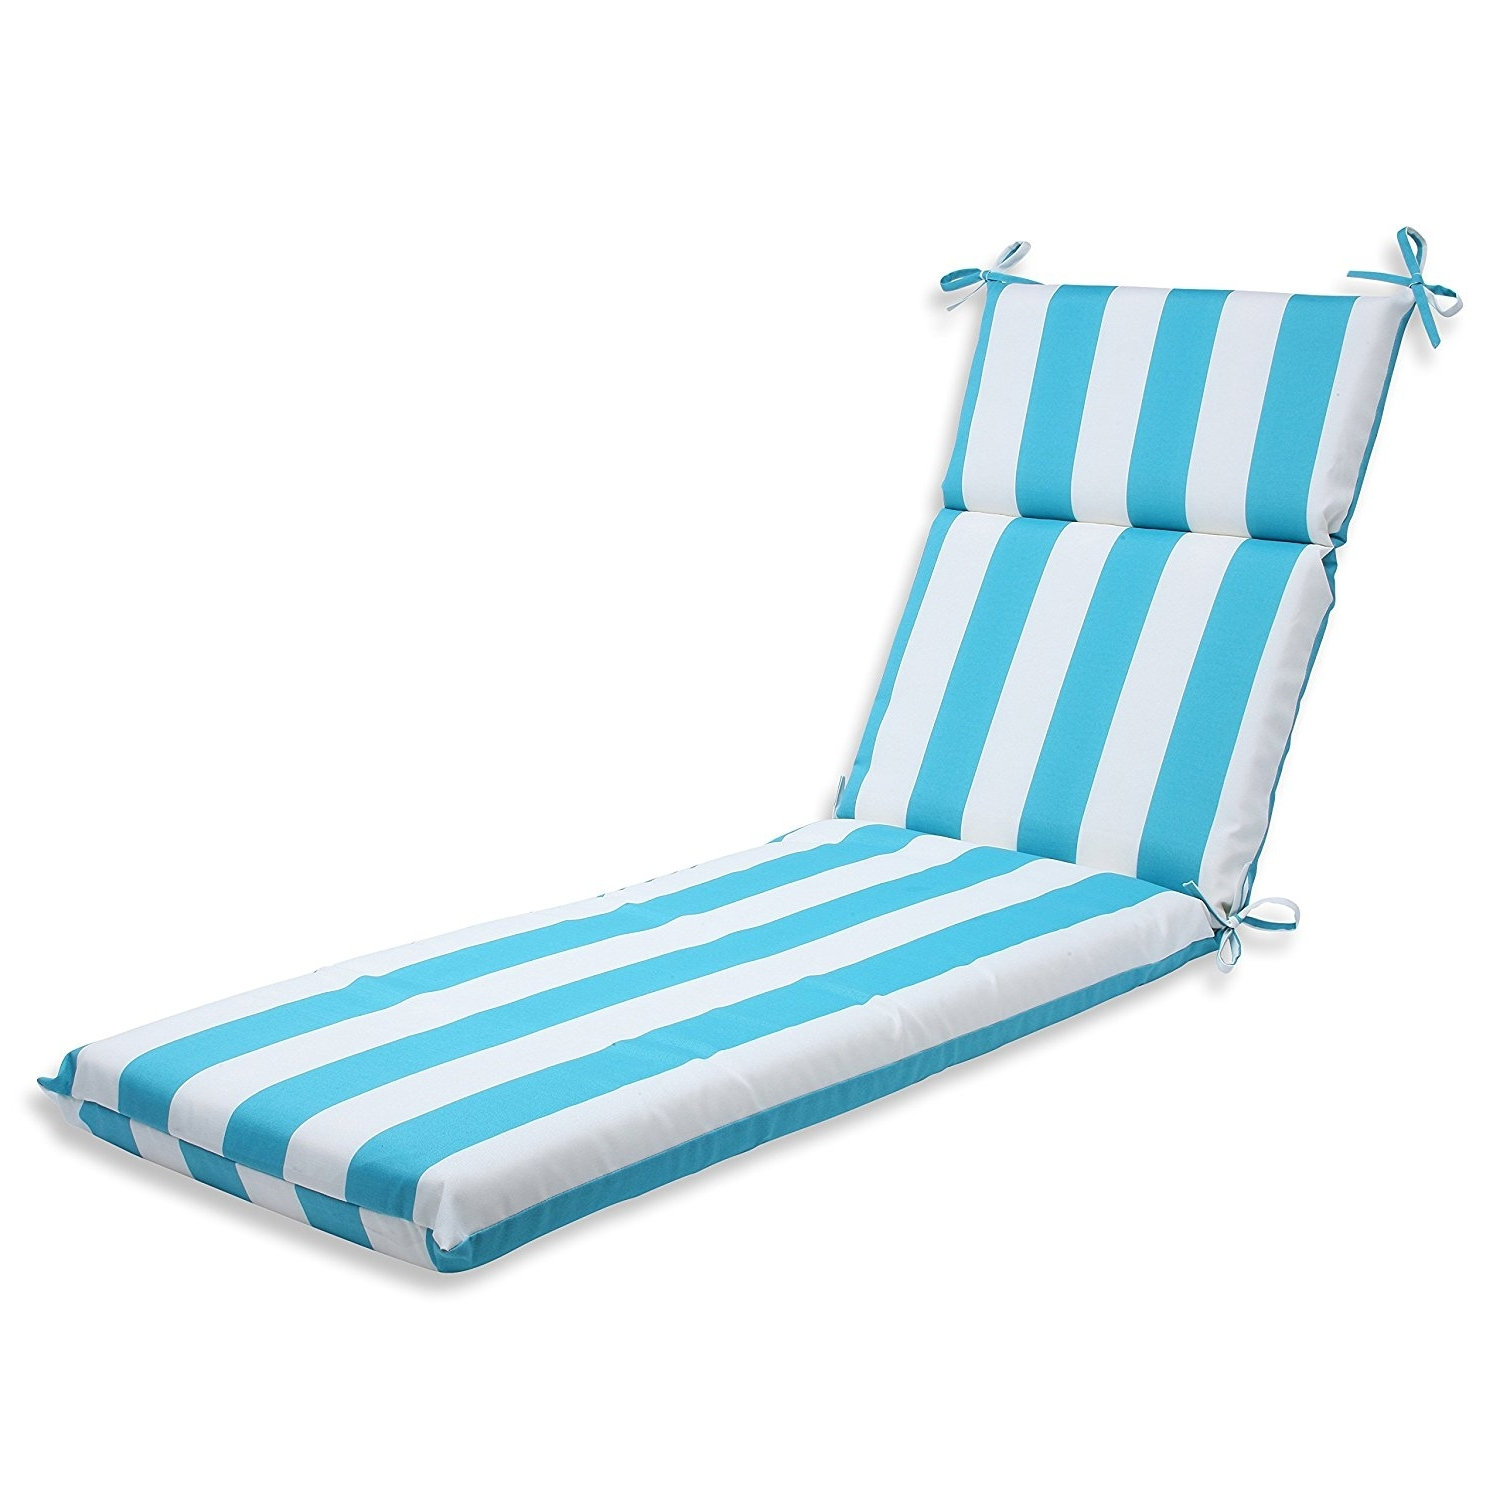 Famous Turquoise Chaise Lounges Inside Amazon: Pillow Perfect Outdoor Cabana Stripe Chaise Lounge (View 4 of 15)